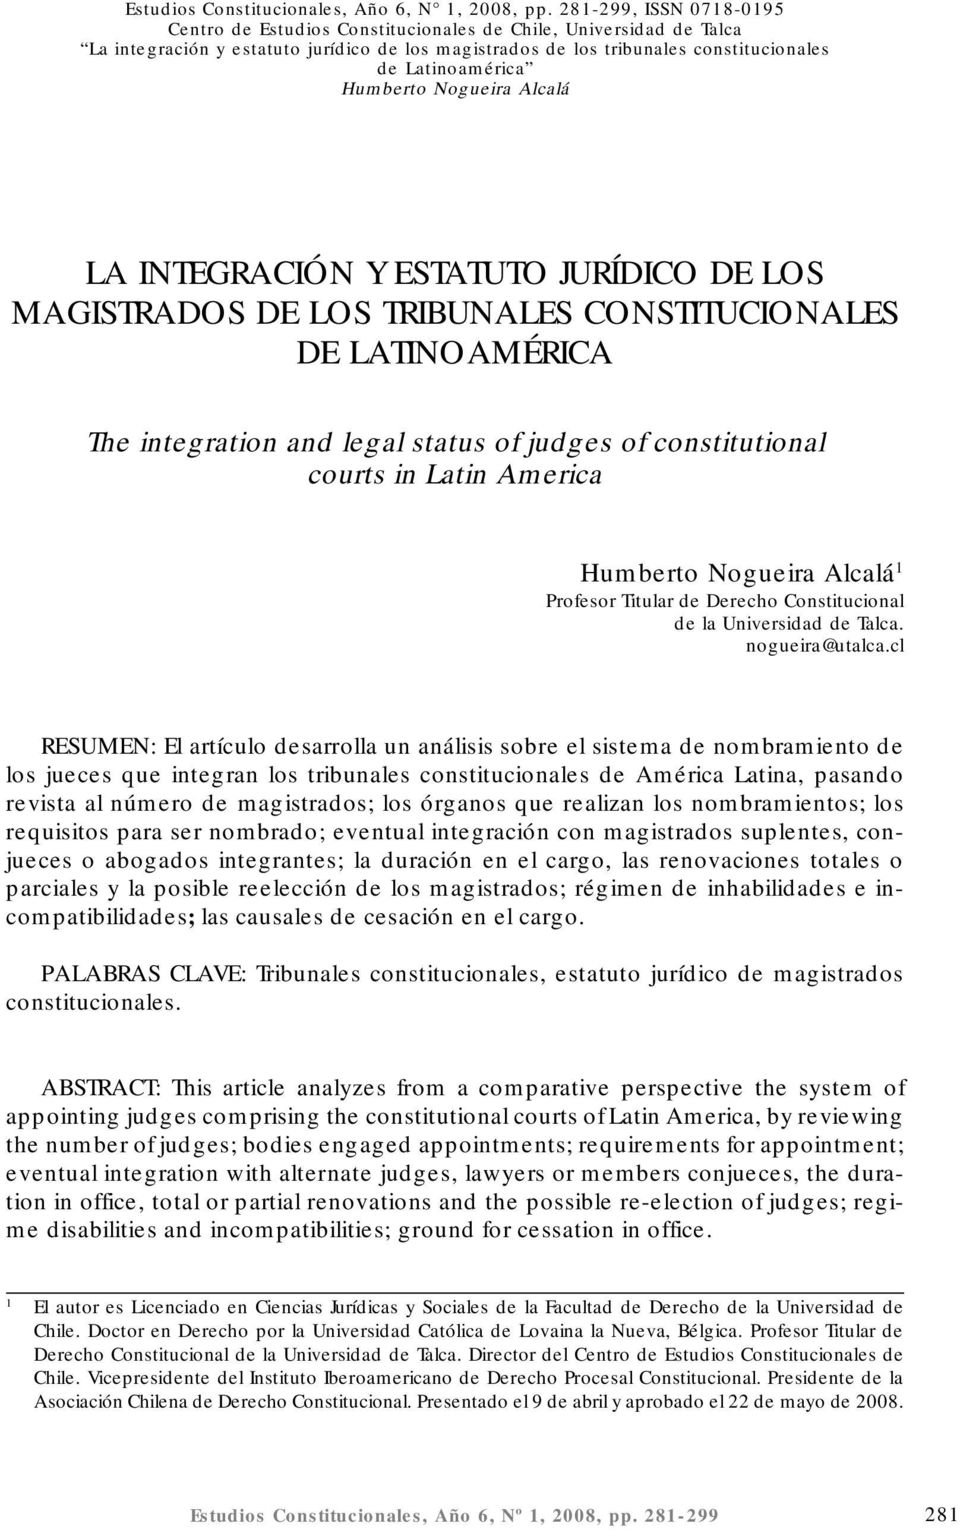 los tribunales constitucionales de Latinoamérica Humberto Nogueira Alcalá LA INTEGRACIÓN Y ESTATUTO JURÍDICO DE LOS MAGISTRADOS DE LOS TRIBUNALES CONSTITUCIONALES DE LATINOAMÉRICA The integration and